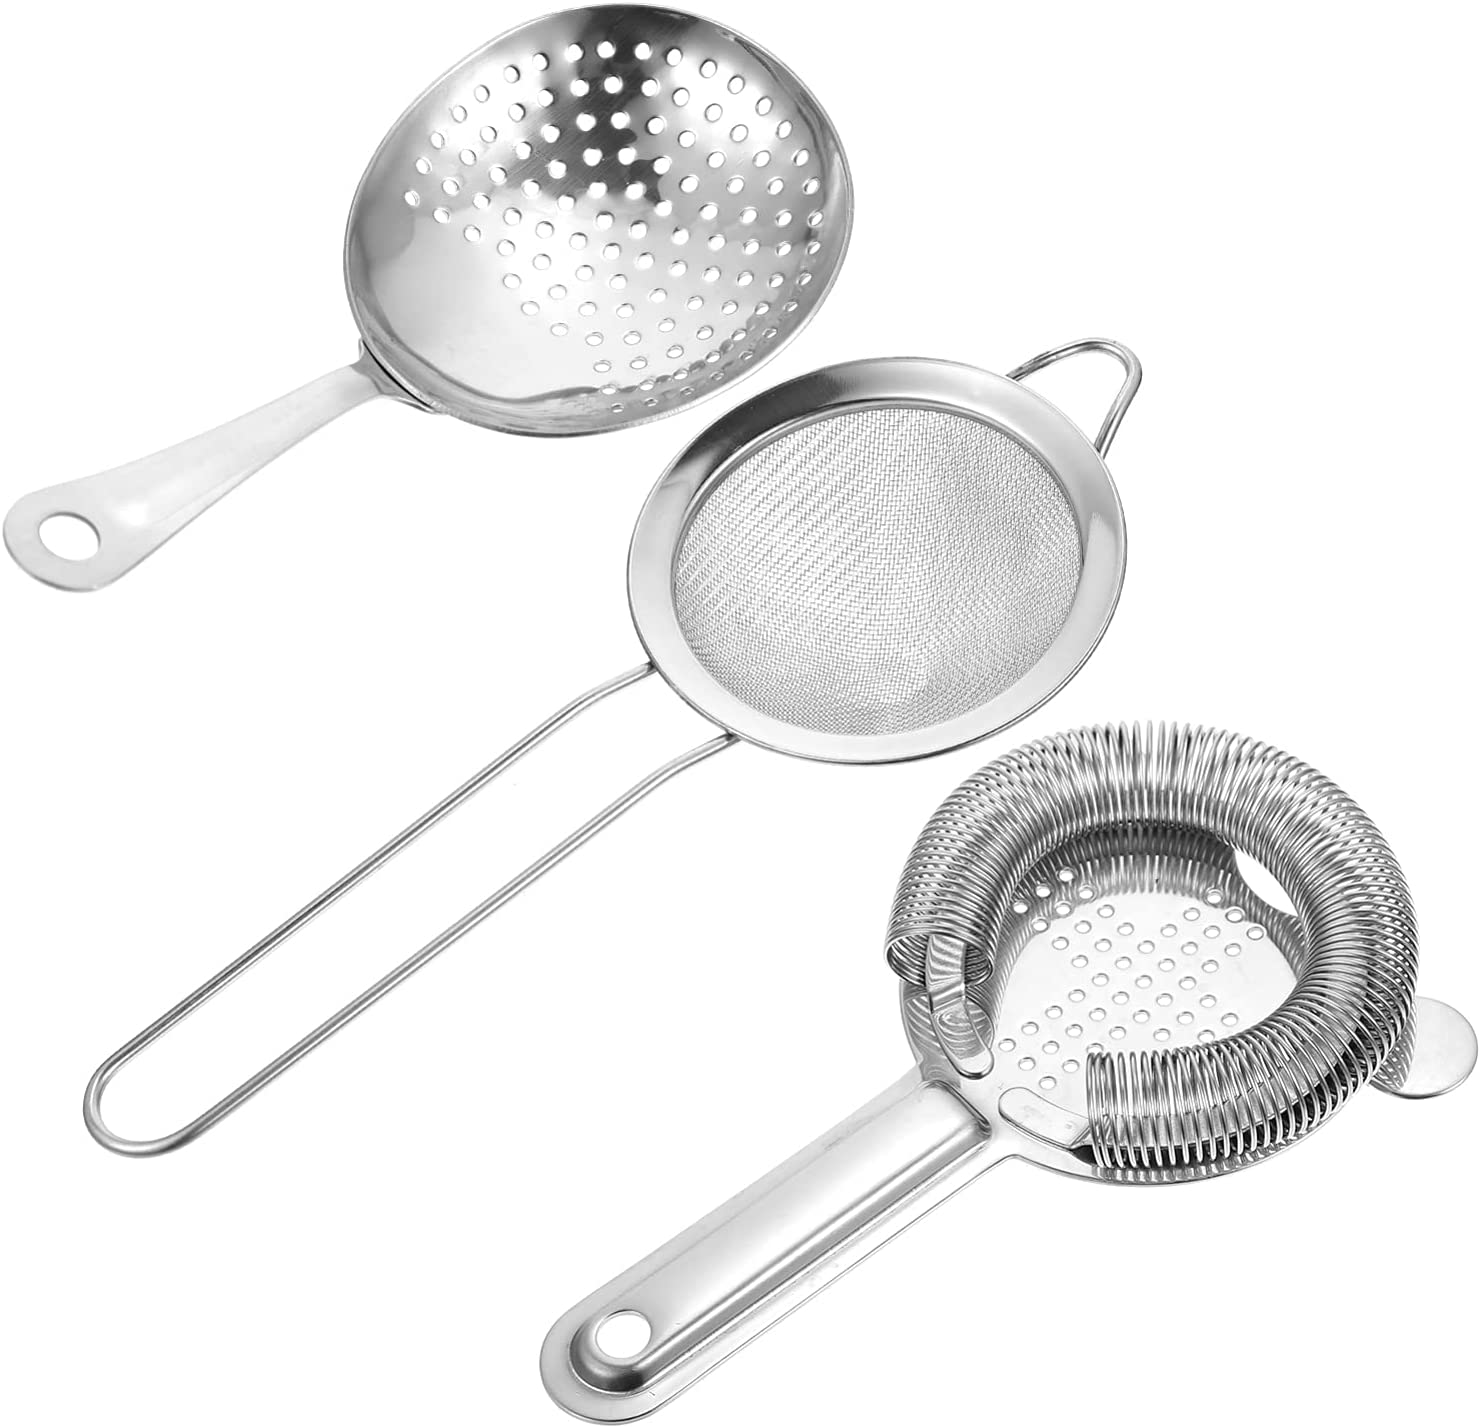 Sale SALE% OFF DOITOOL 3Pcs Metal Barware Bar Translated Stainless Strainer Tool Cocktail